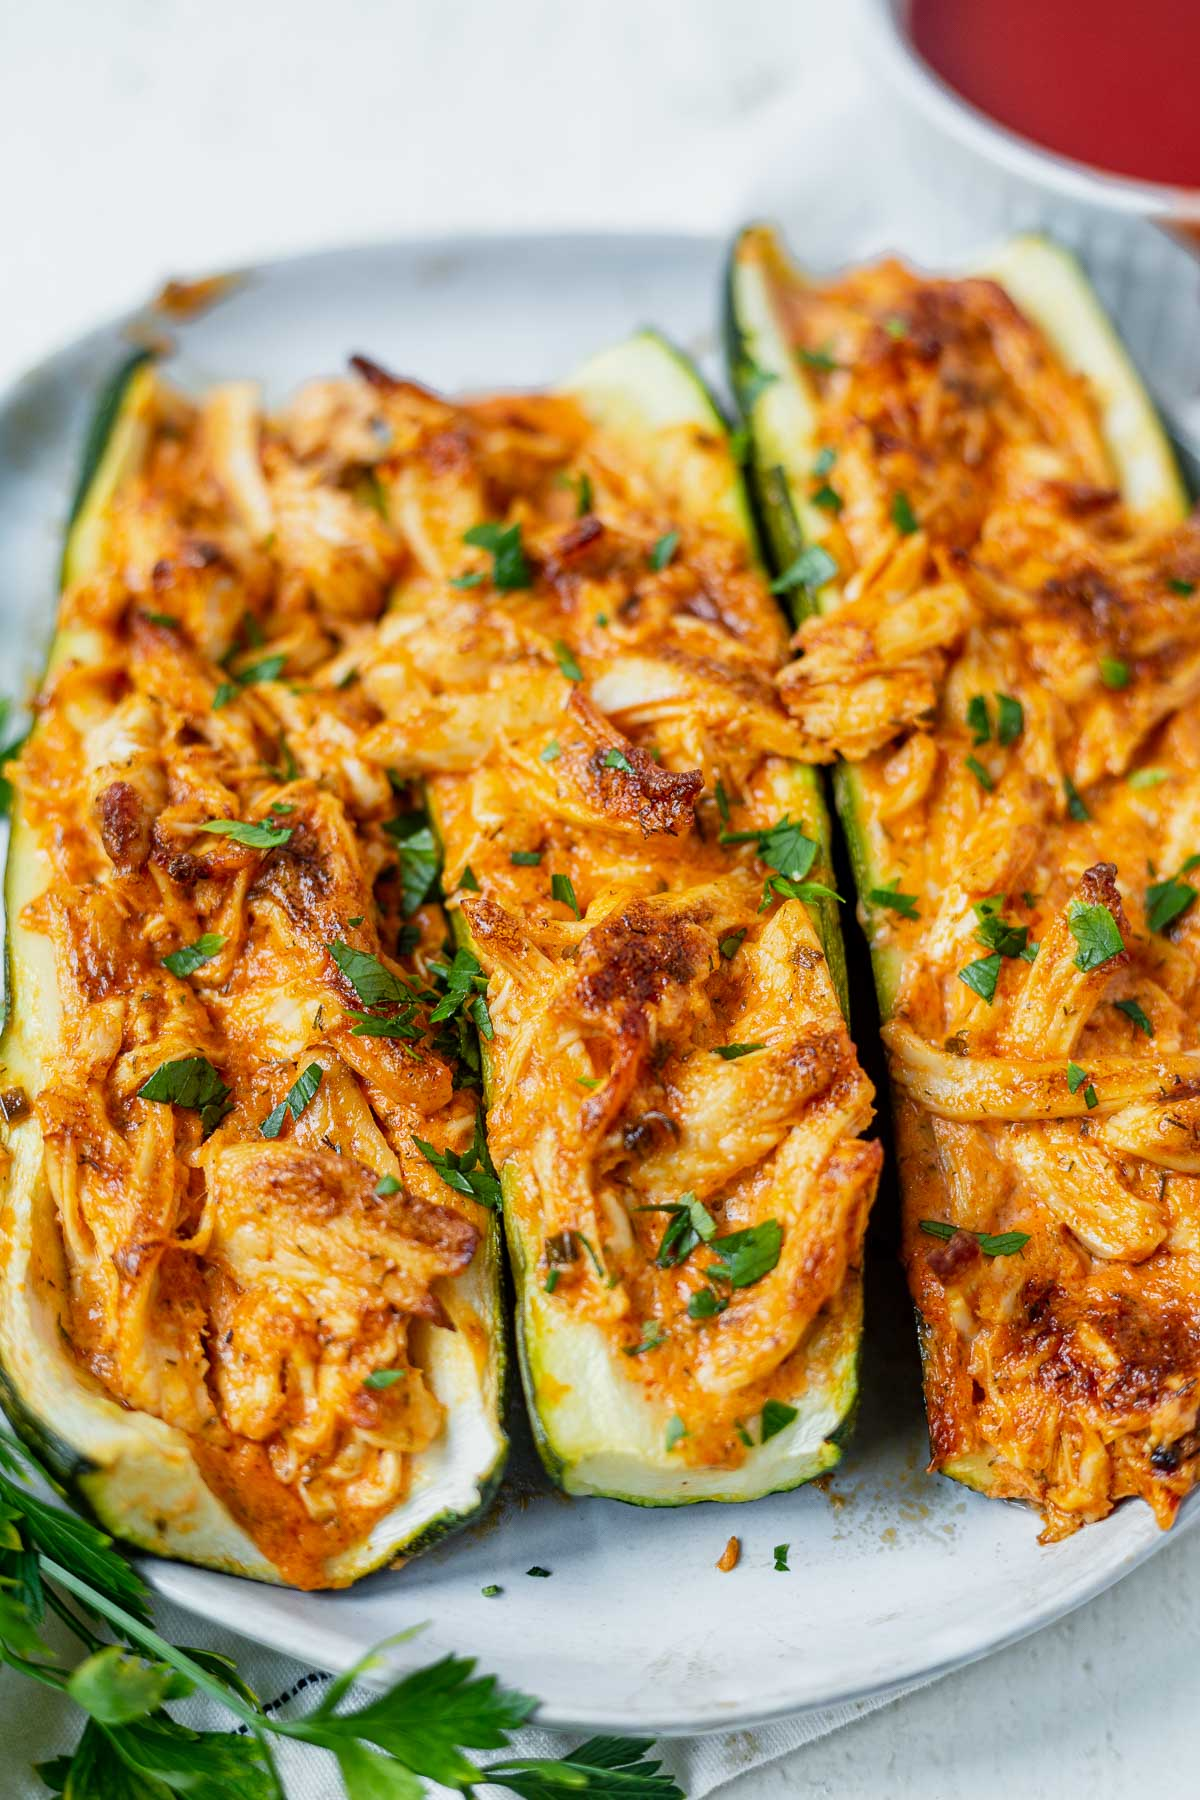 three buffalo chicken stuffed zucchini boats on a white plate topped with parsley